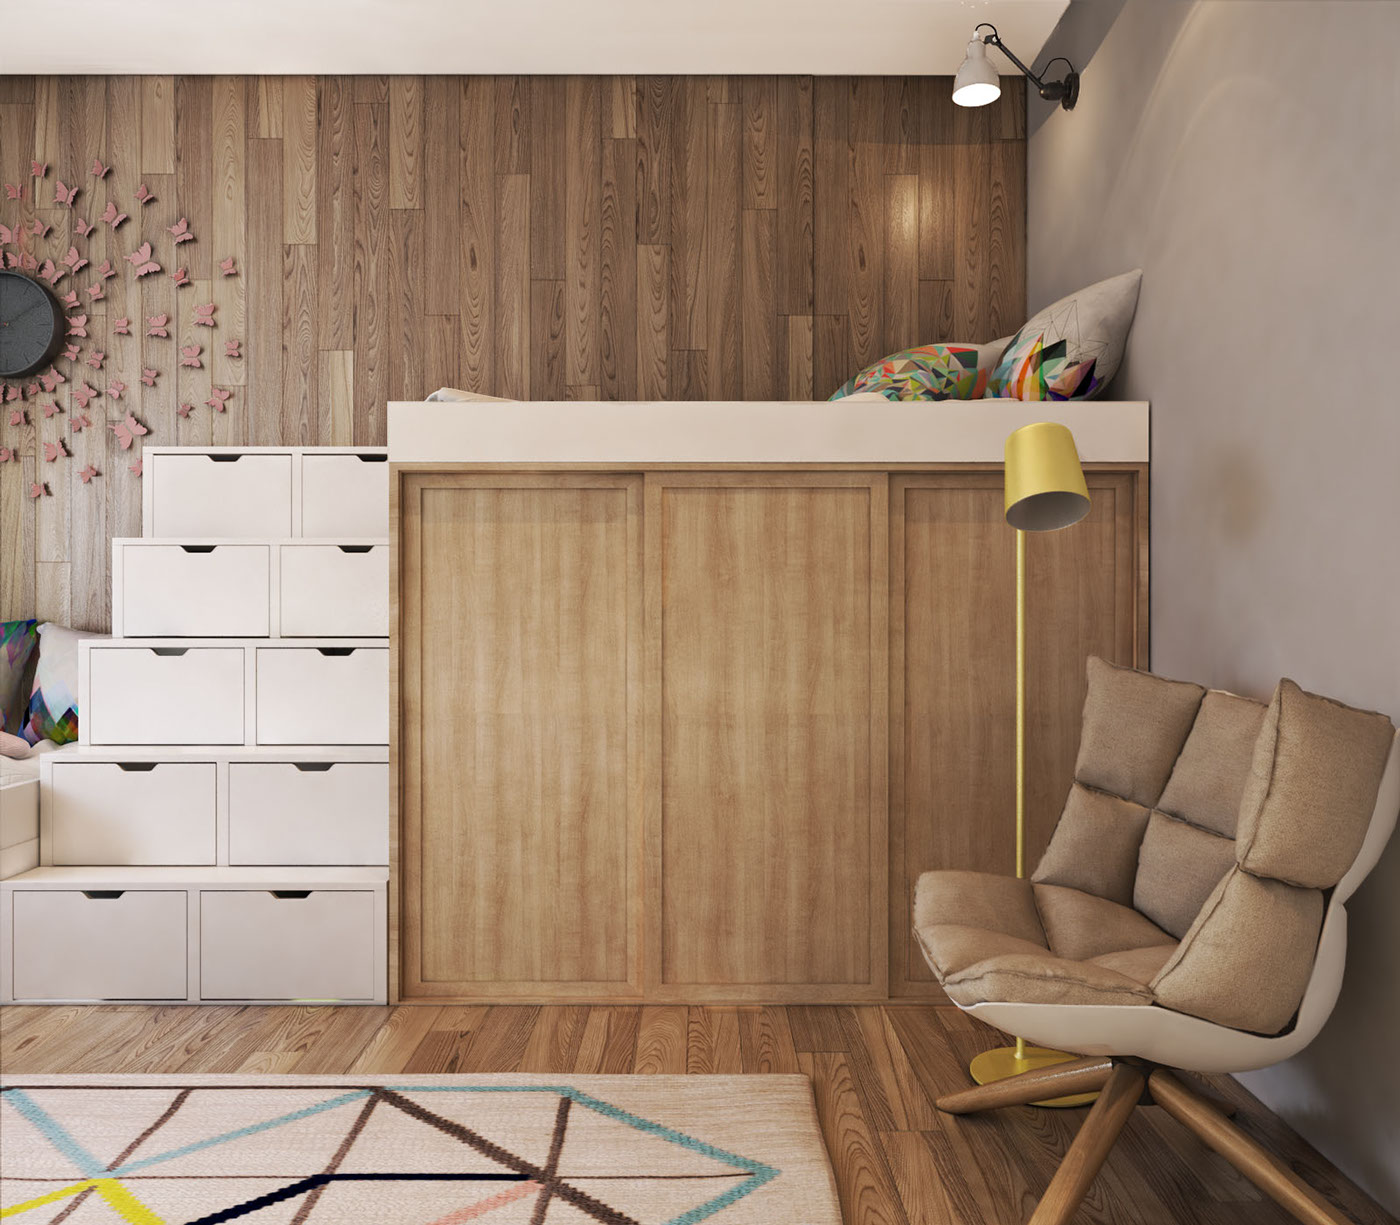 Cozy Modern Armchair - A contemporary apartment with lots of open space